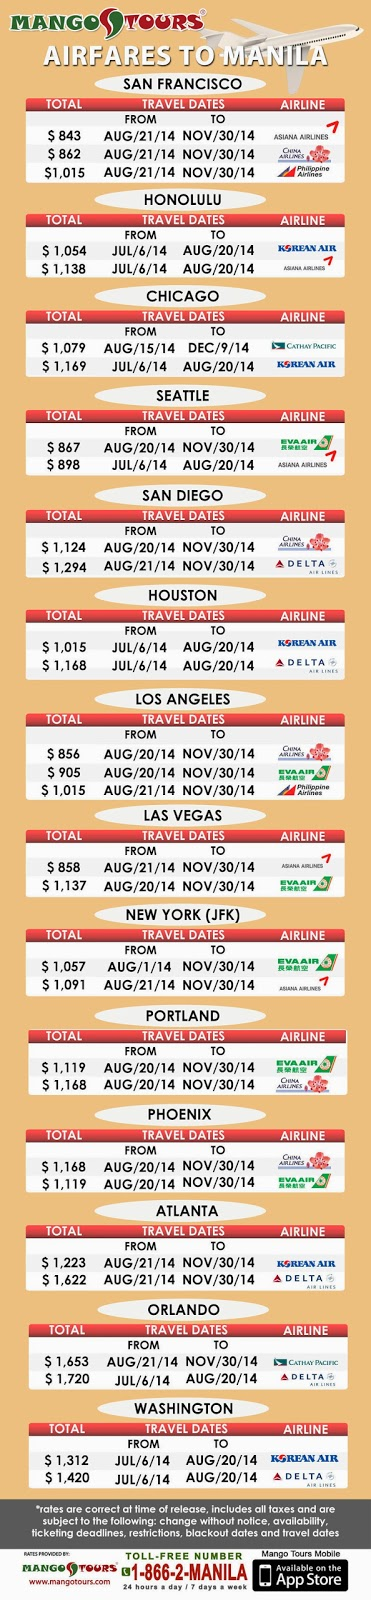 Current airfares to Manila as of May 24, 2014